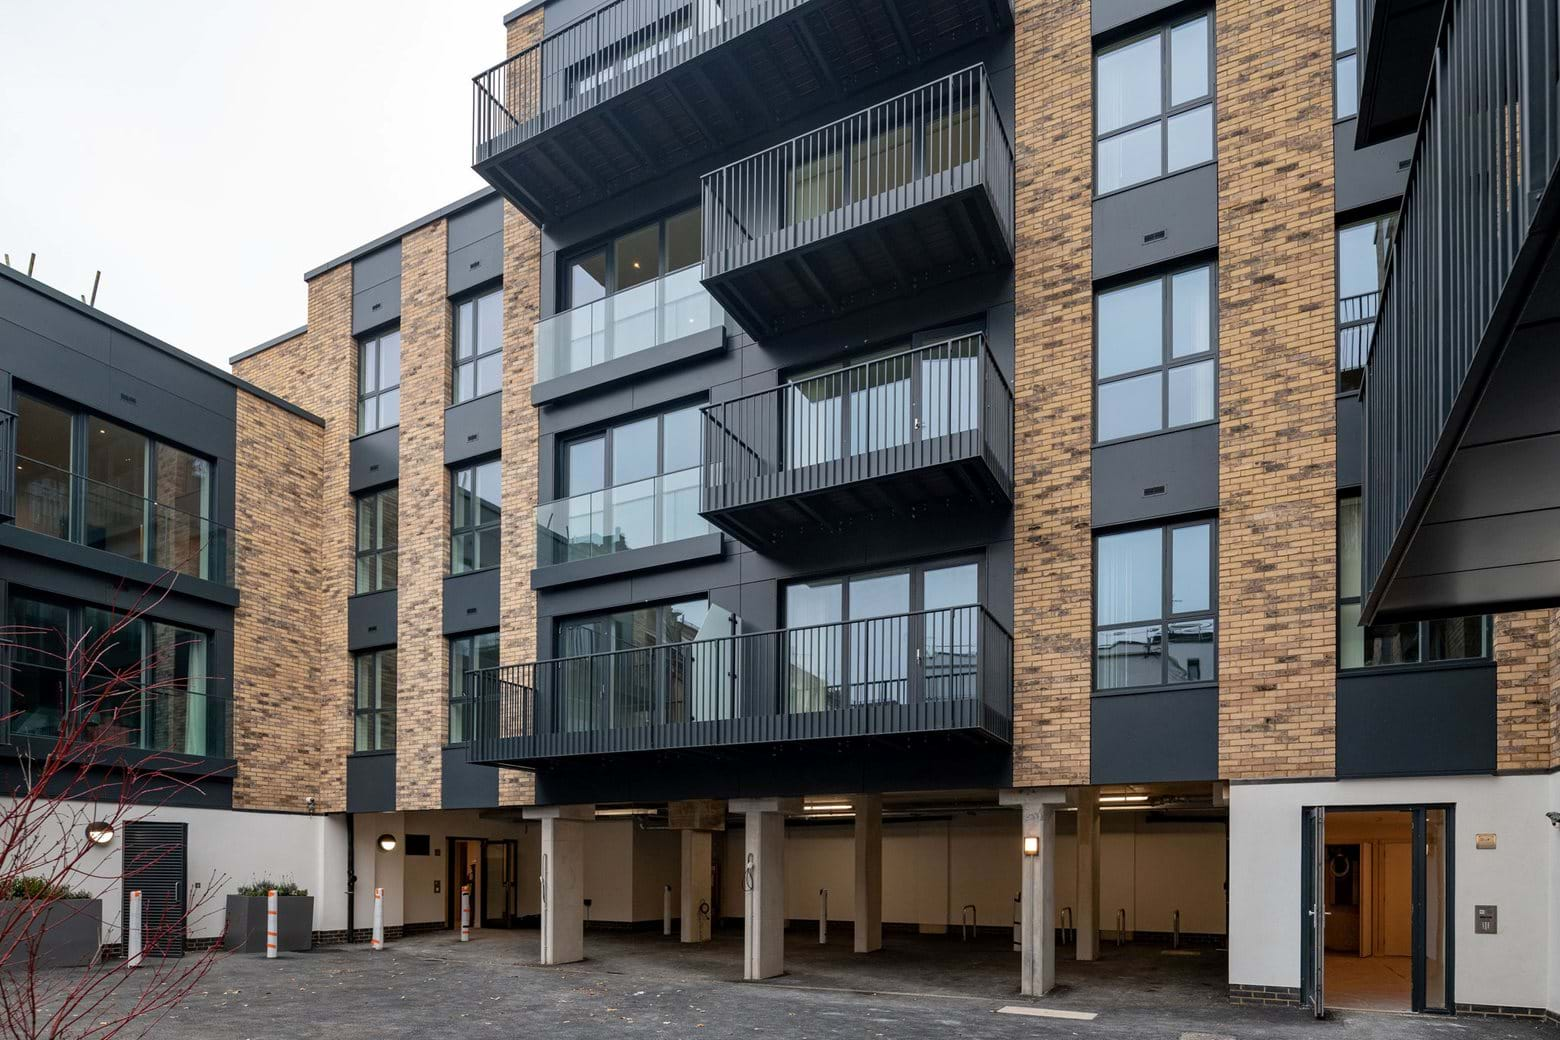 Patchworks - Shared Ownership Exterior